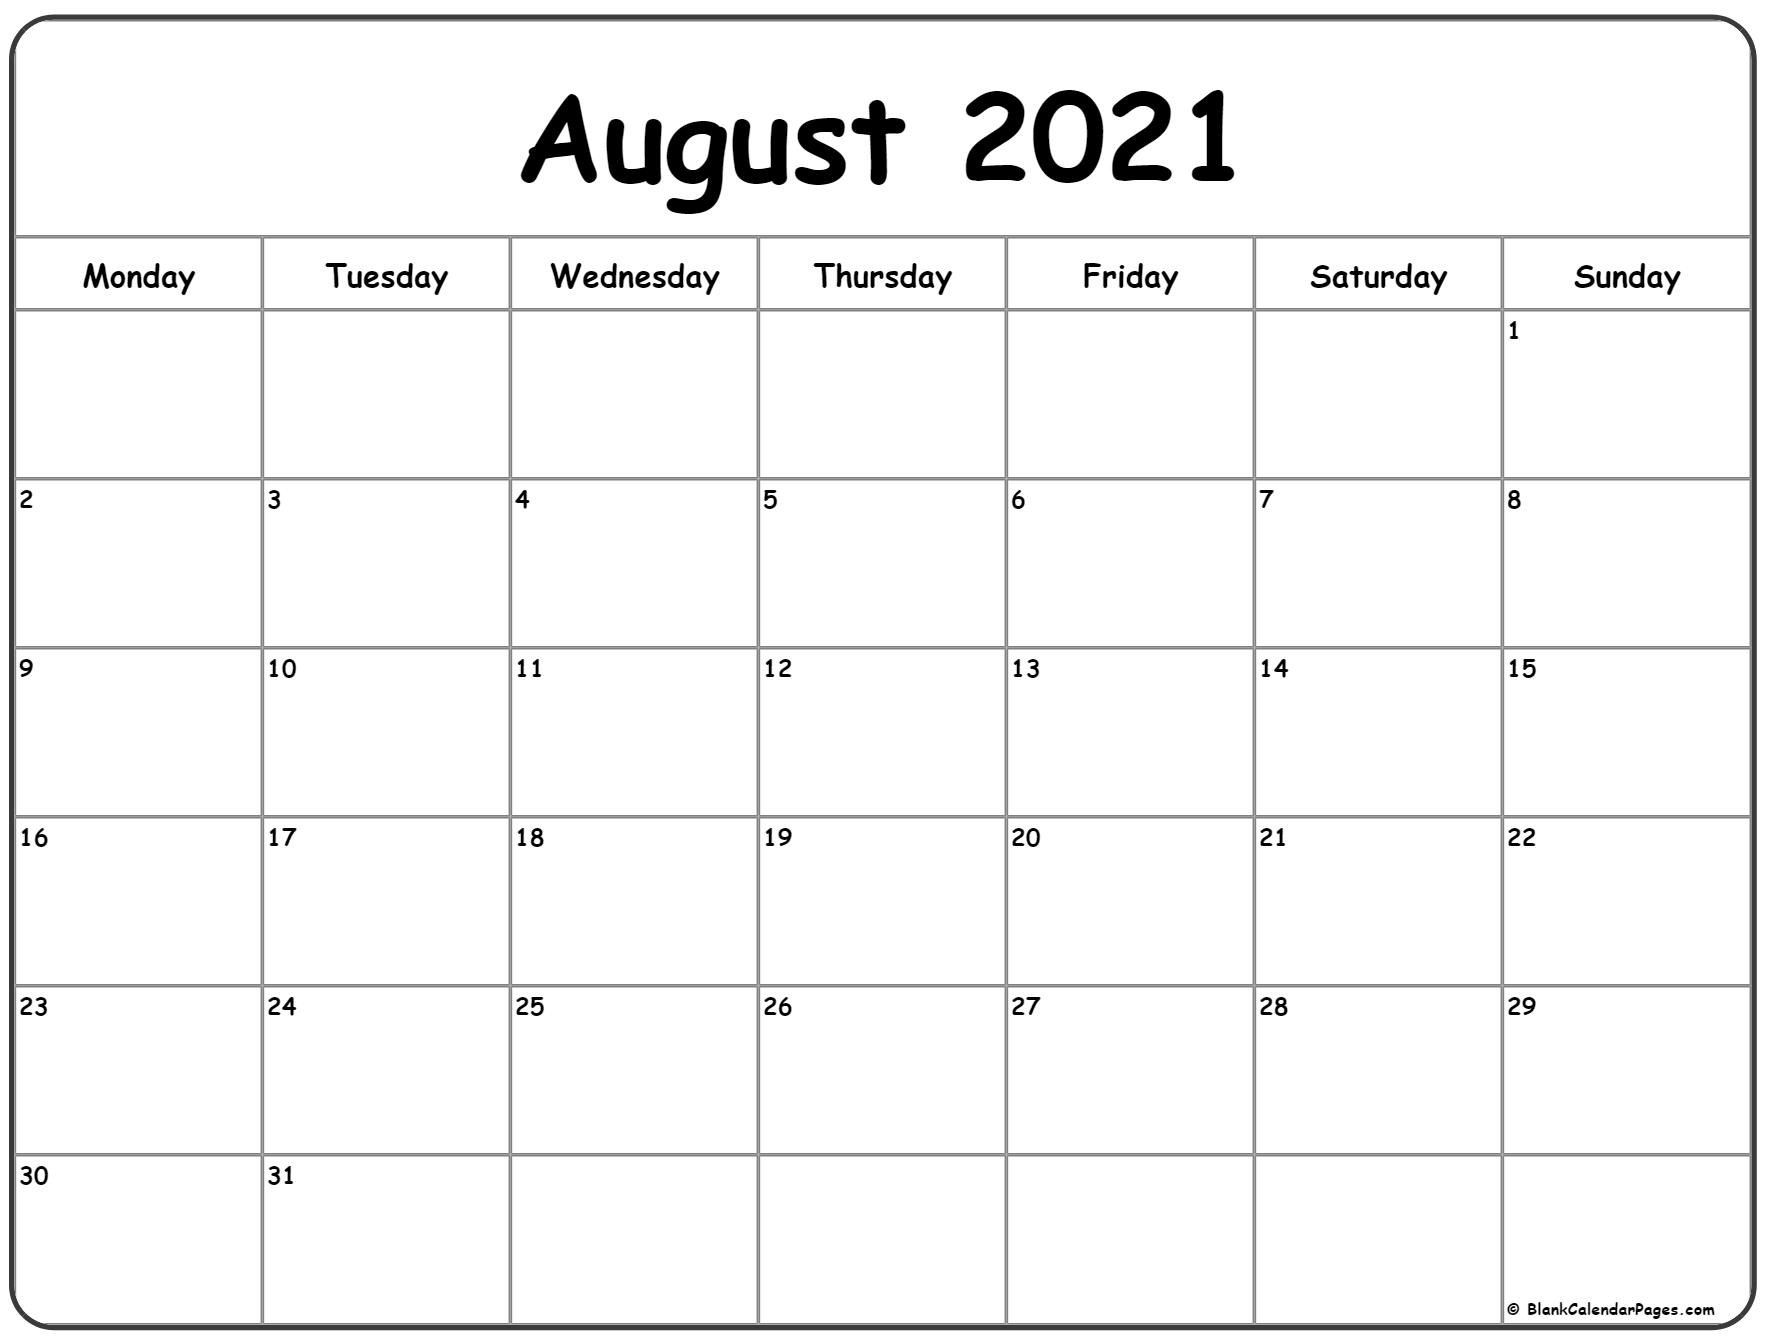 August 2021 Monday Calendar | Monday To Sunday